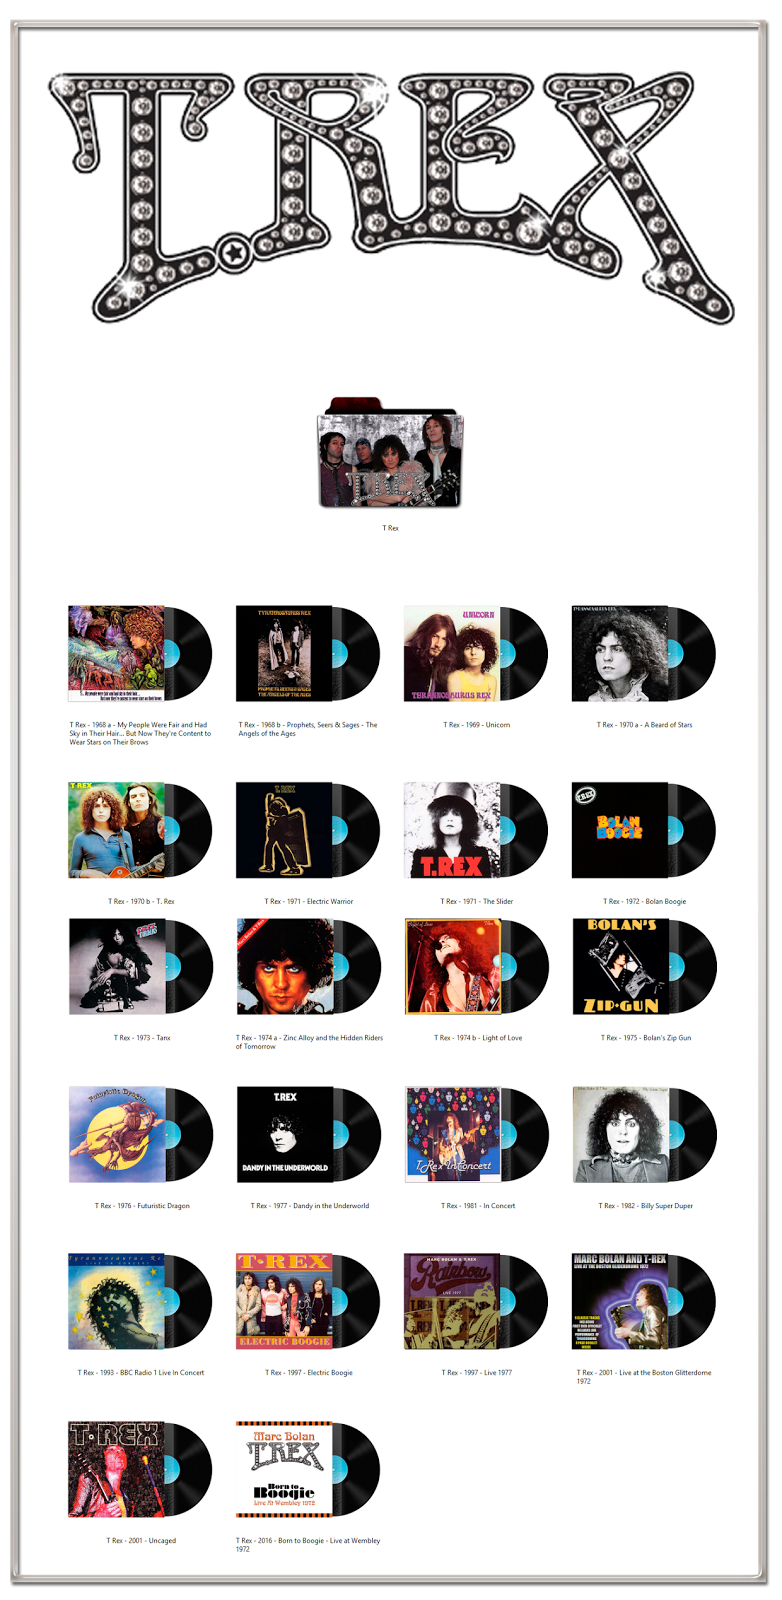 Pin by alissa miller on Albums in 2019 | Rock album covers, Glam